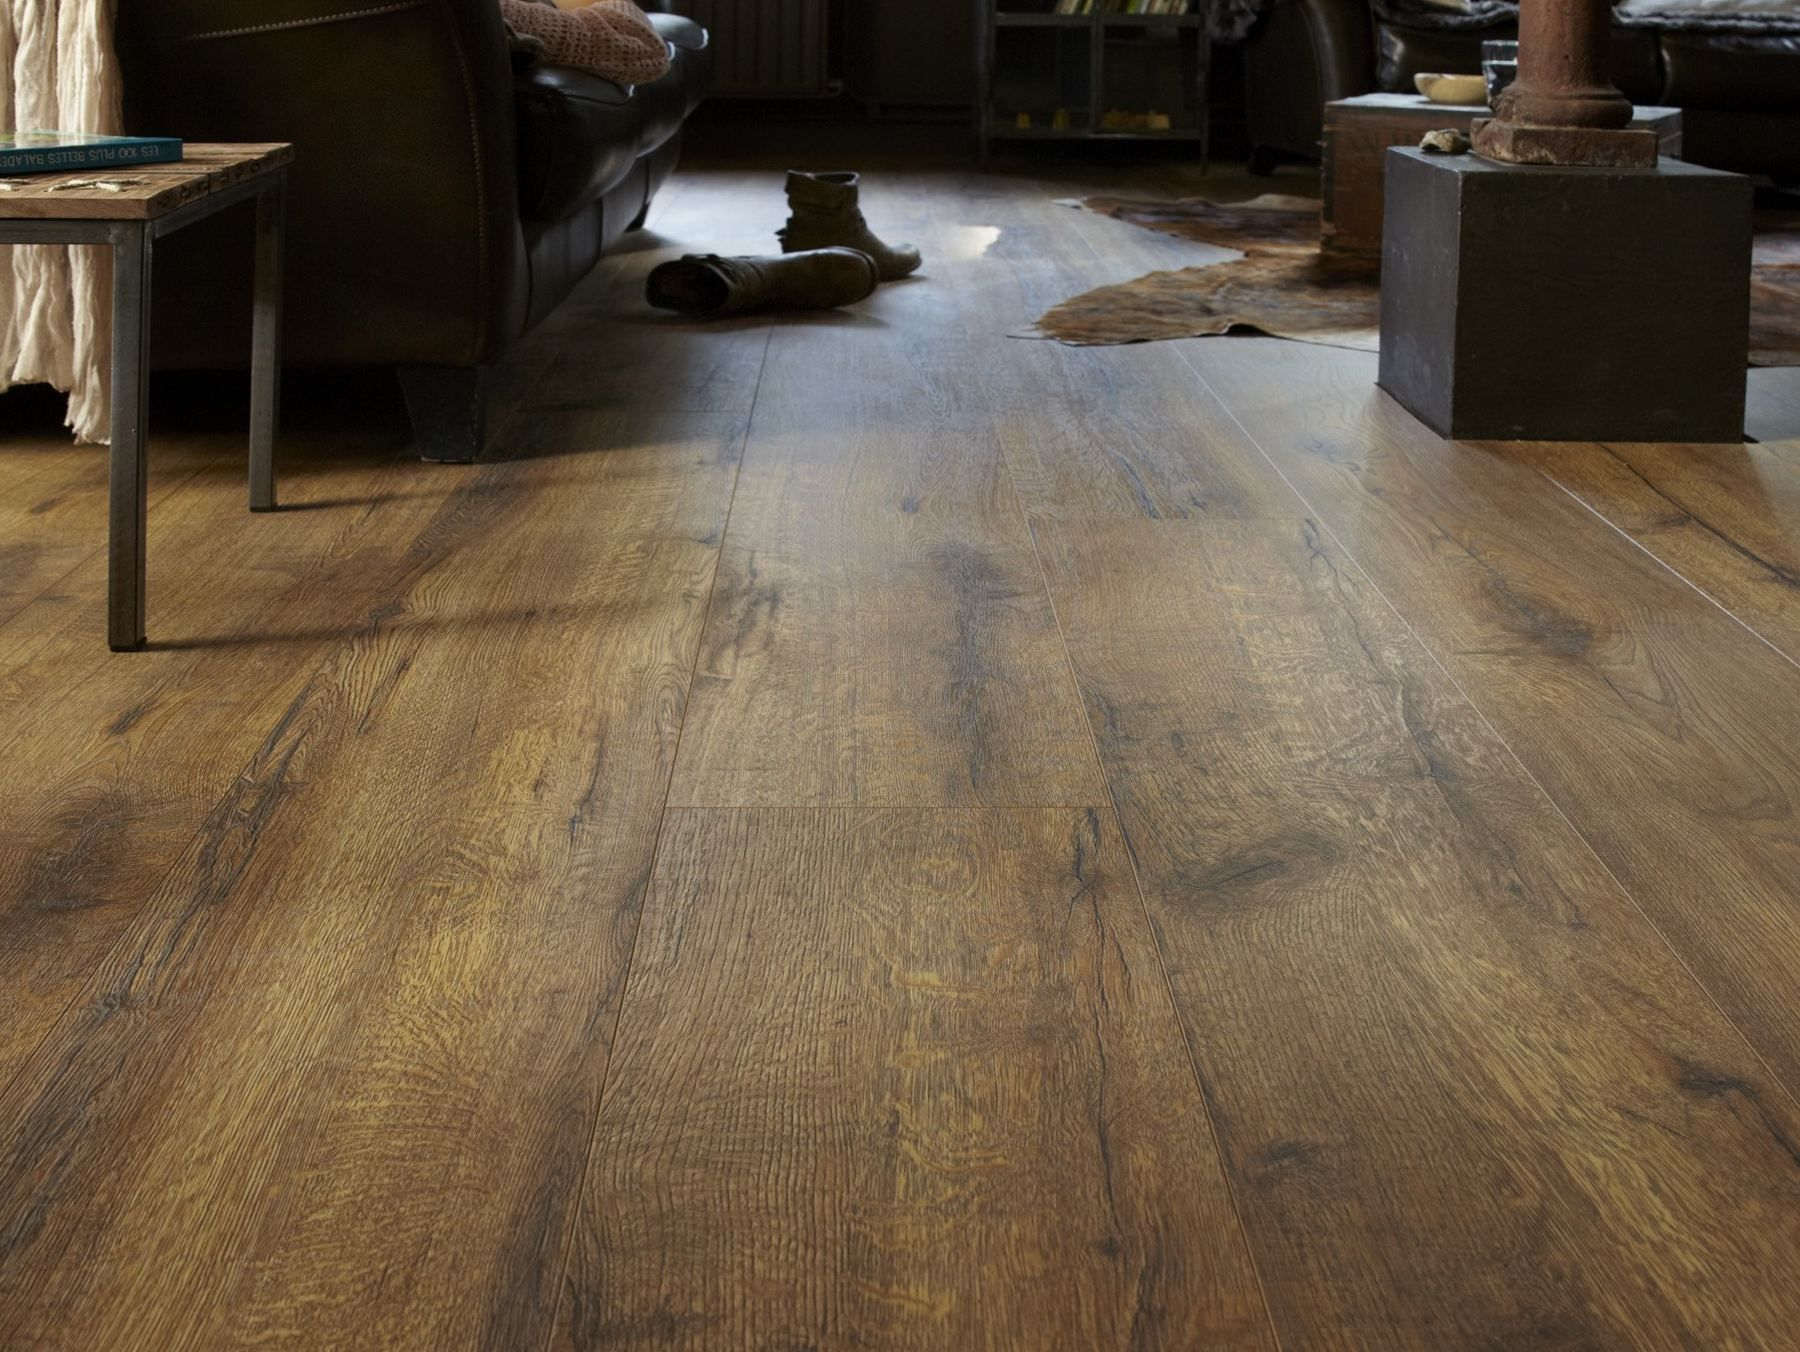 Laminate floor tiles LONG BOARDS Laminate Collection by